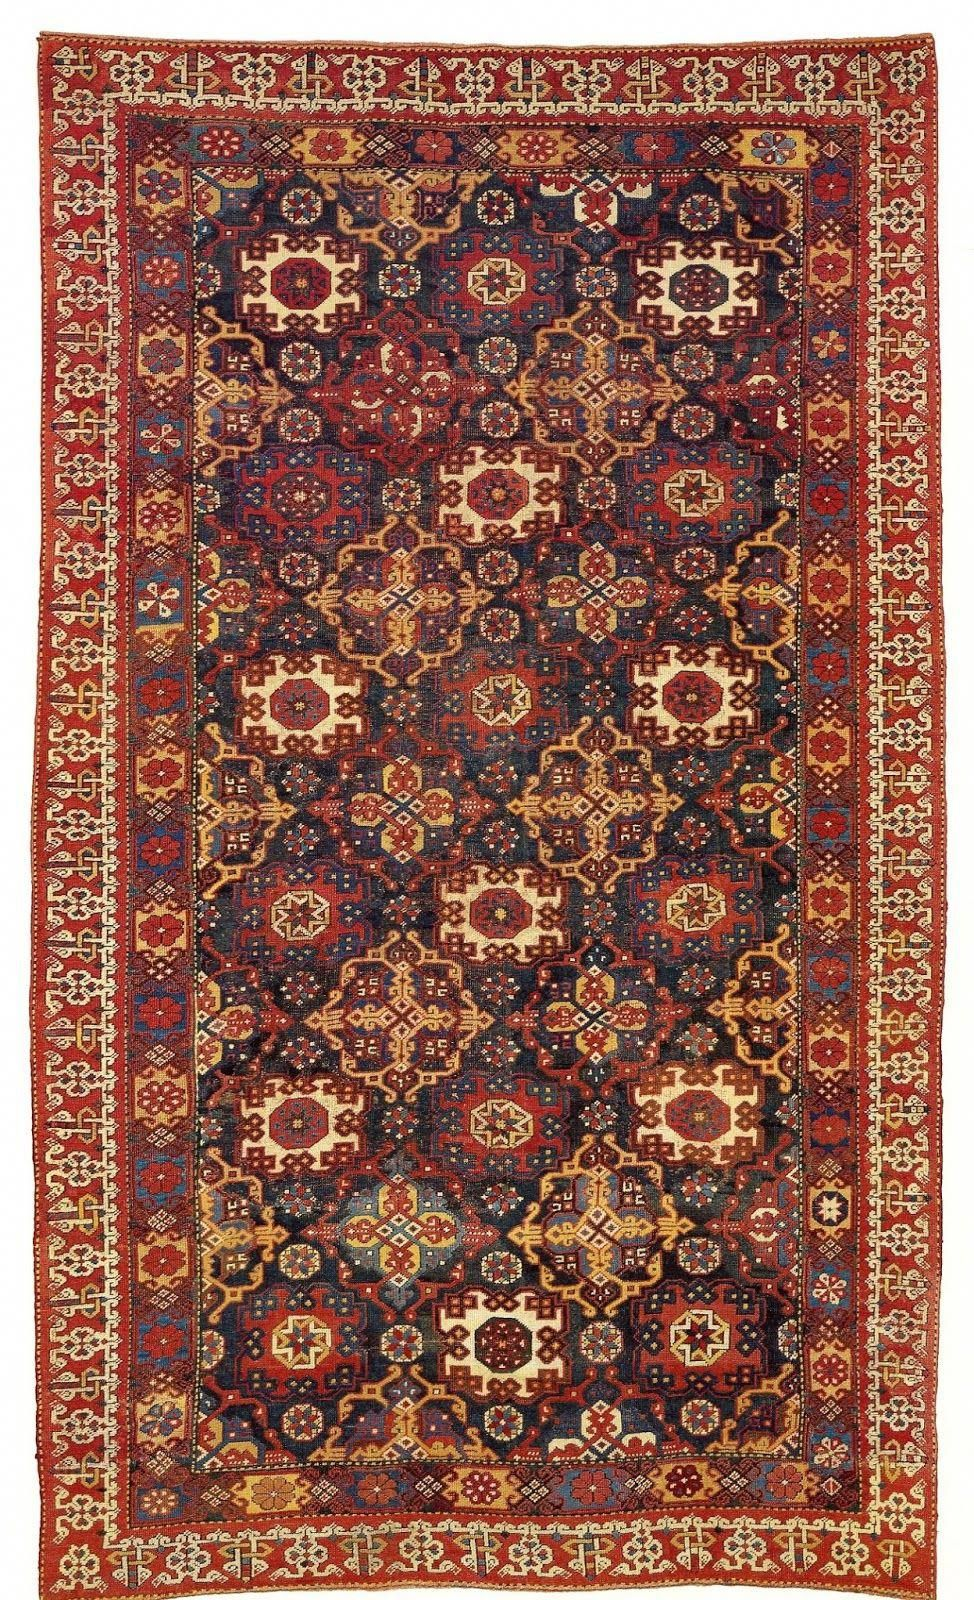 Carpet Runners By The Foot Lowes Code 5307960996